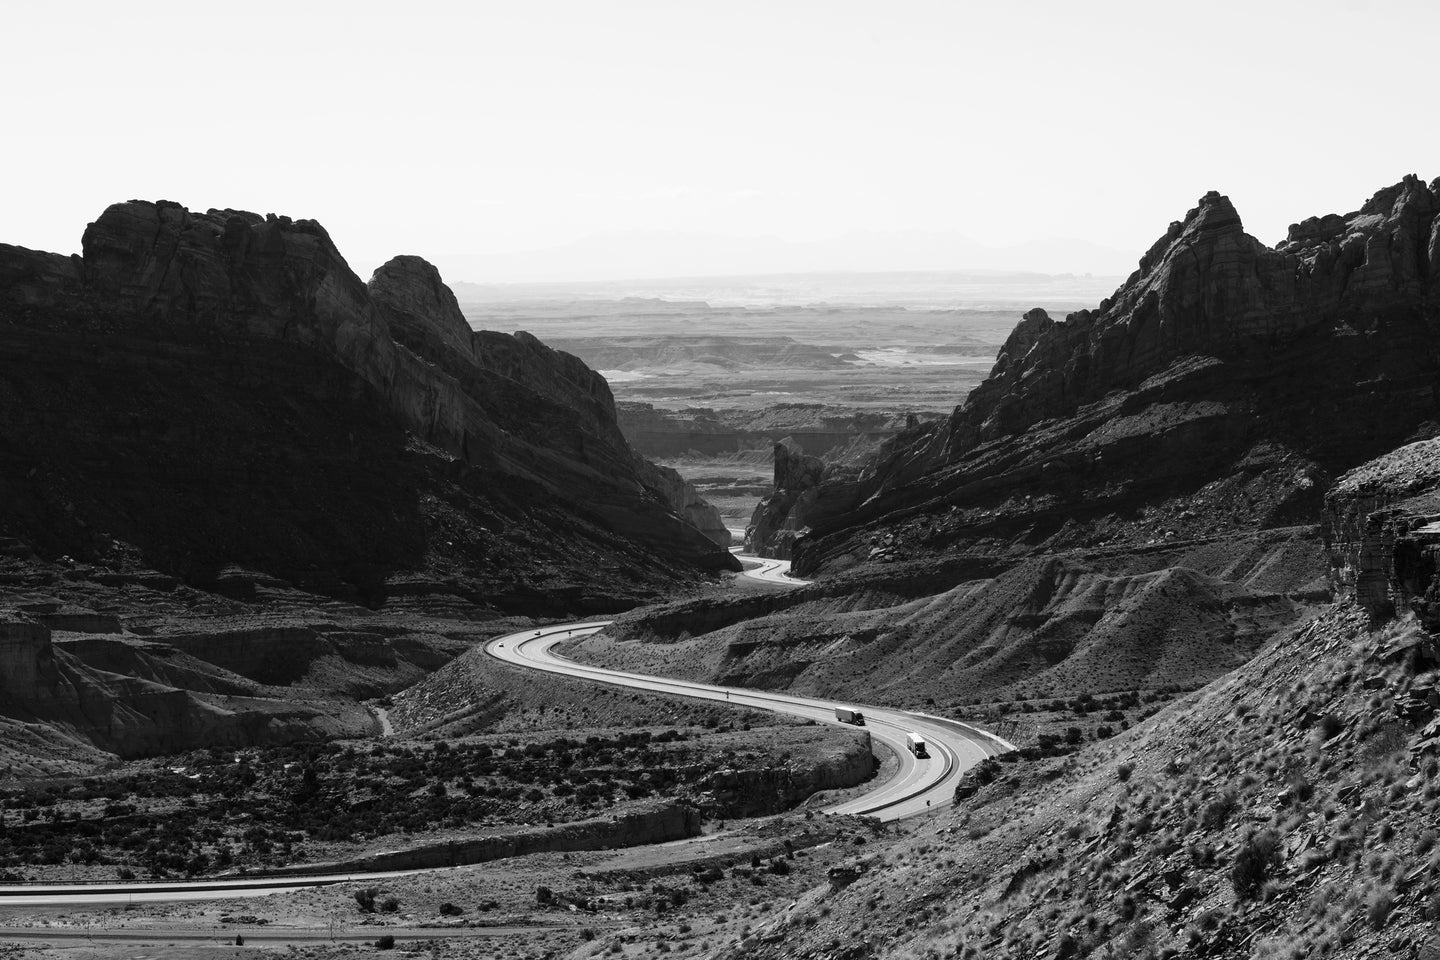 Grayscale photo of roadway surrounded with rocky mountains - W-Photographie